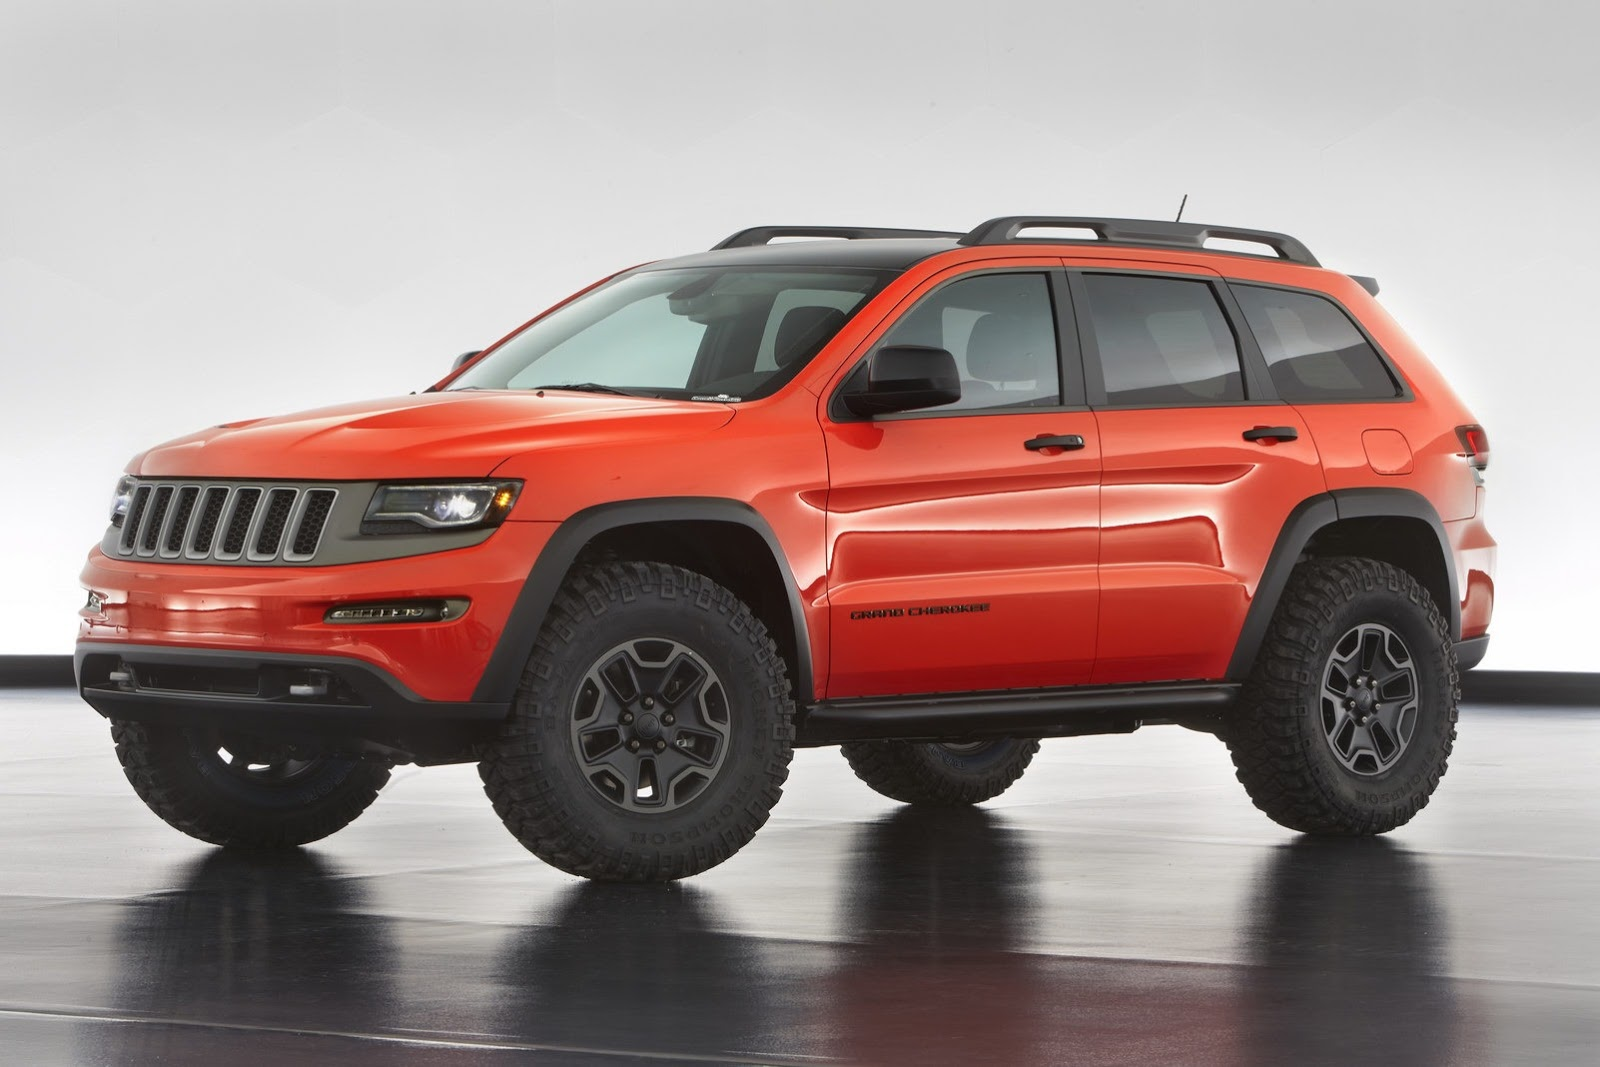 Jeep Grand Cherokee Trailhawk Diesel Moab Concept Wallpaper HD For Mac